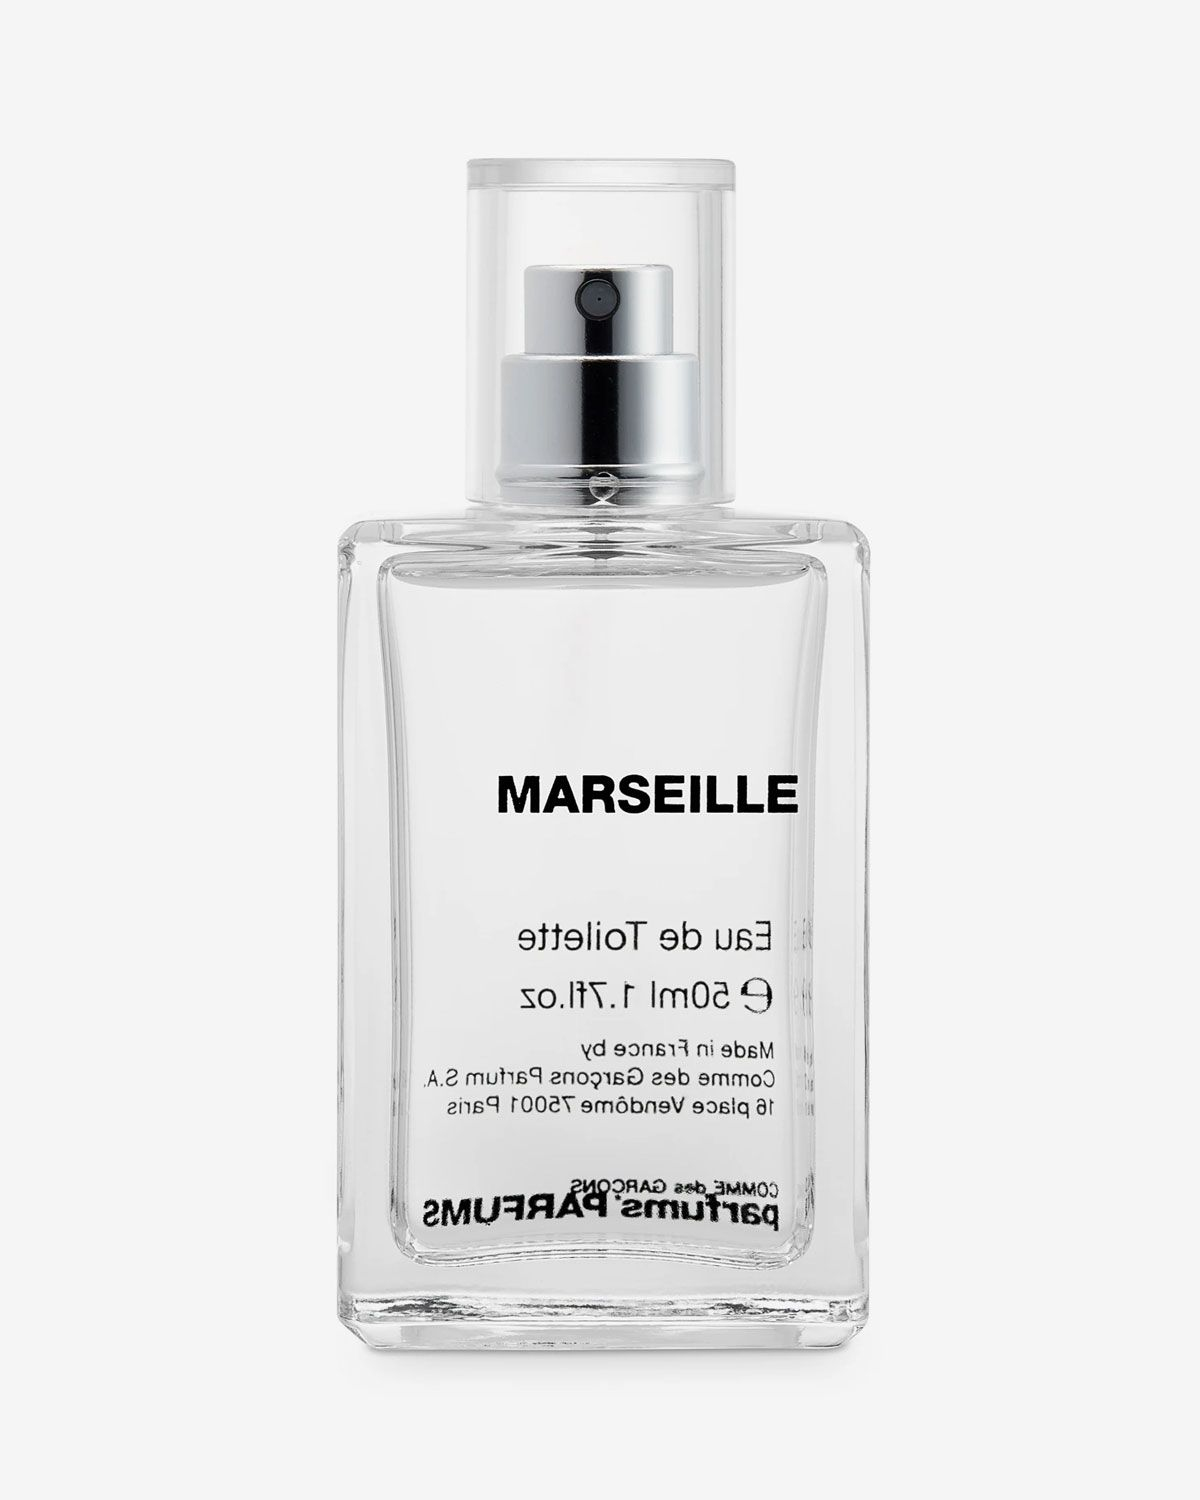 Forget the Shower, Lather Up With COMME des GARÇONS' New Fragrance